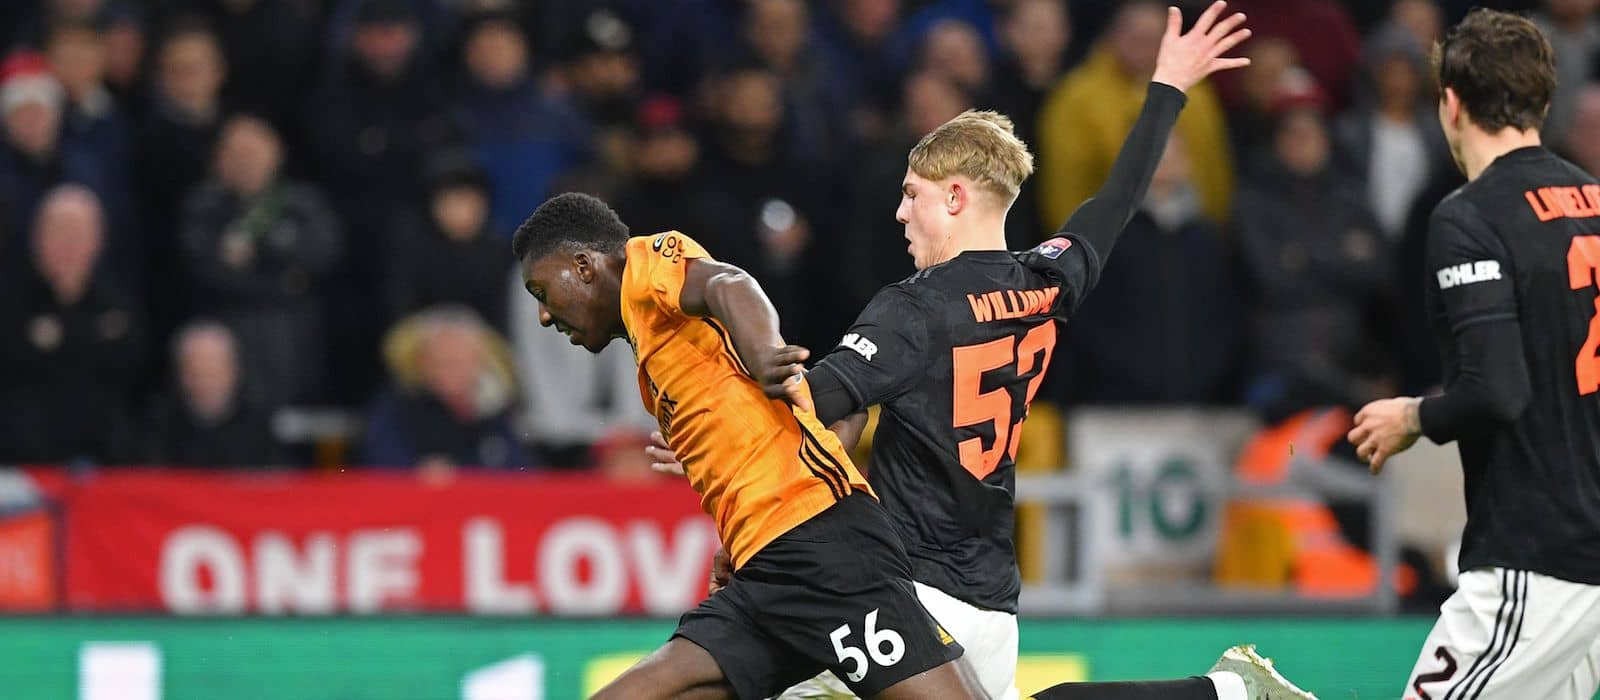 Brandon Williams impresses once again for Manchester United during Wolverhampton Wanderers stalemate